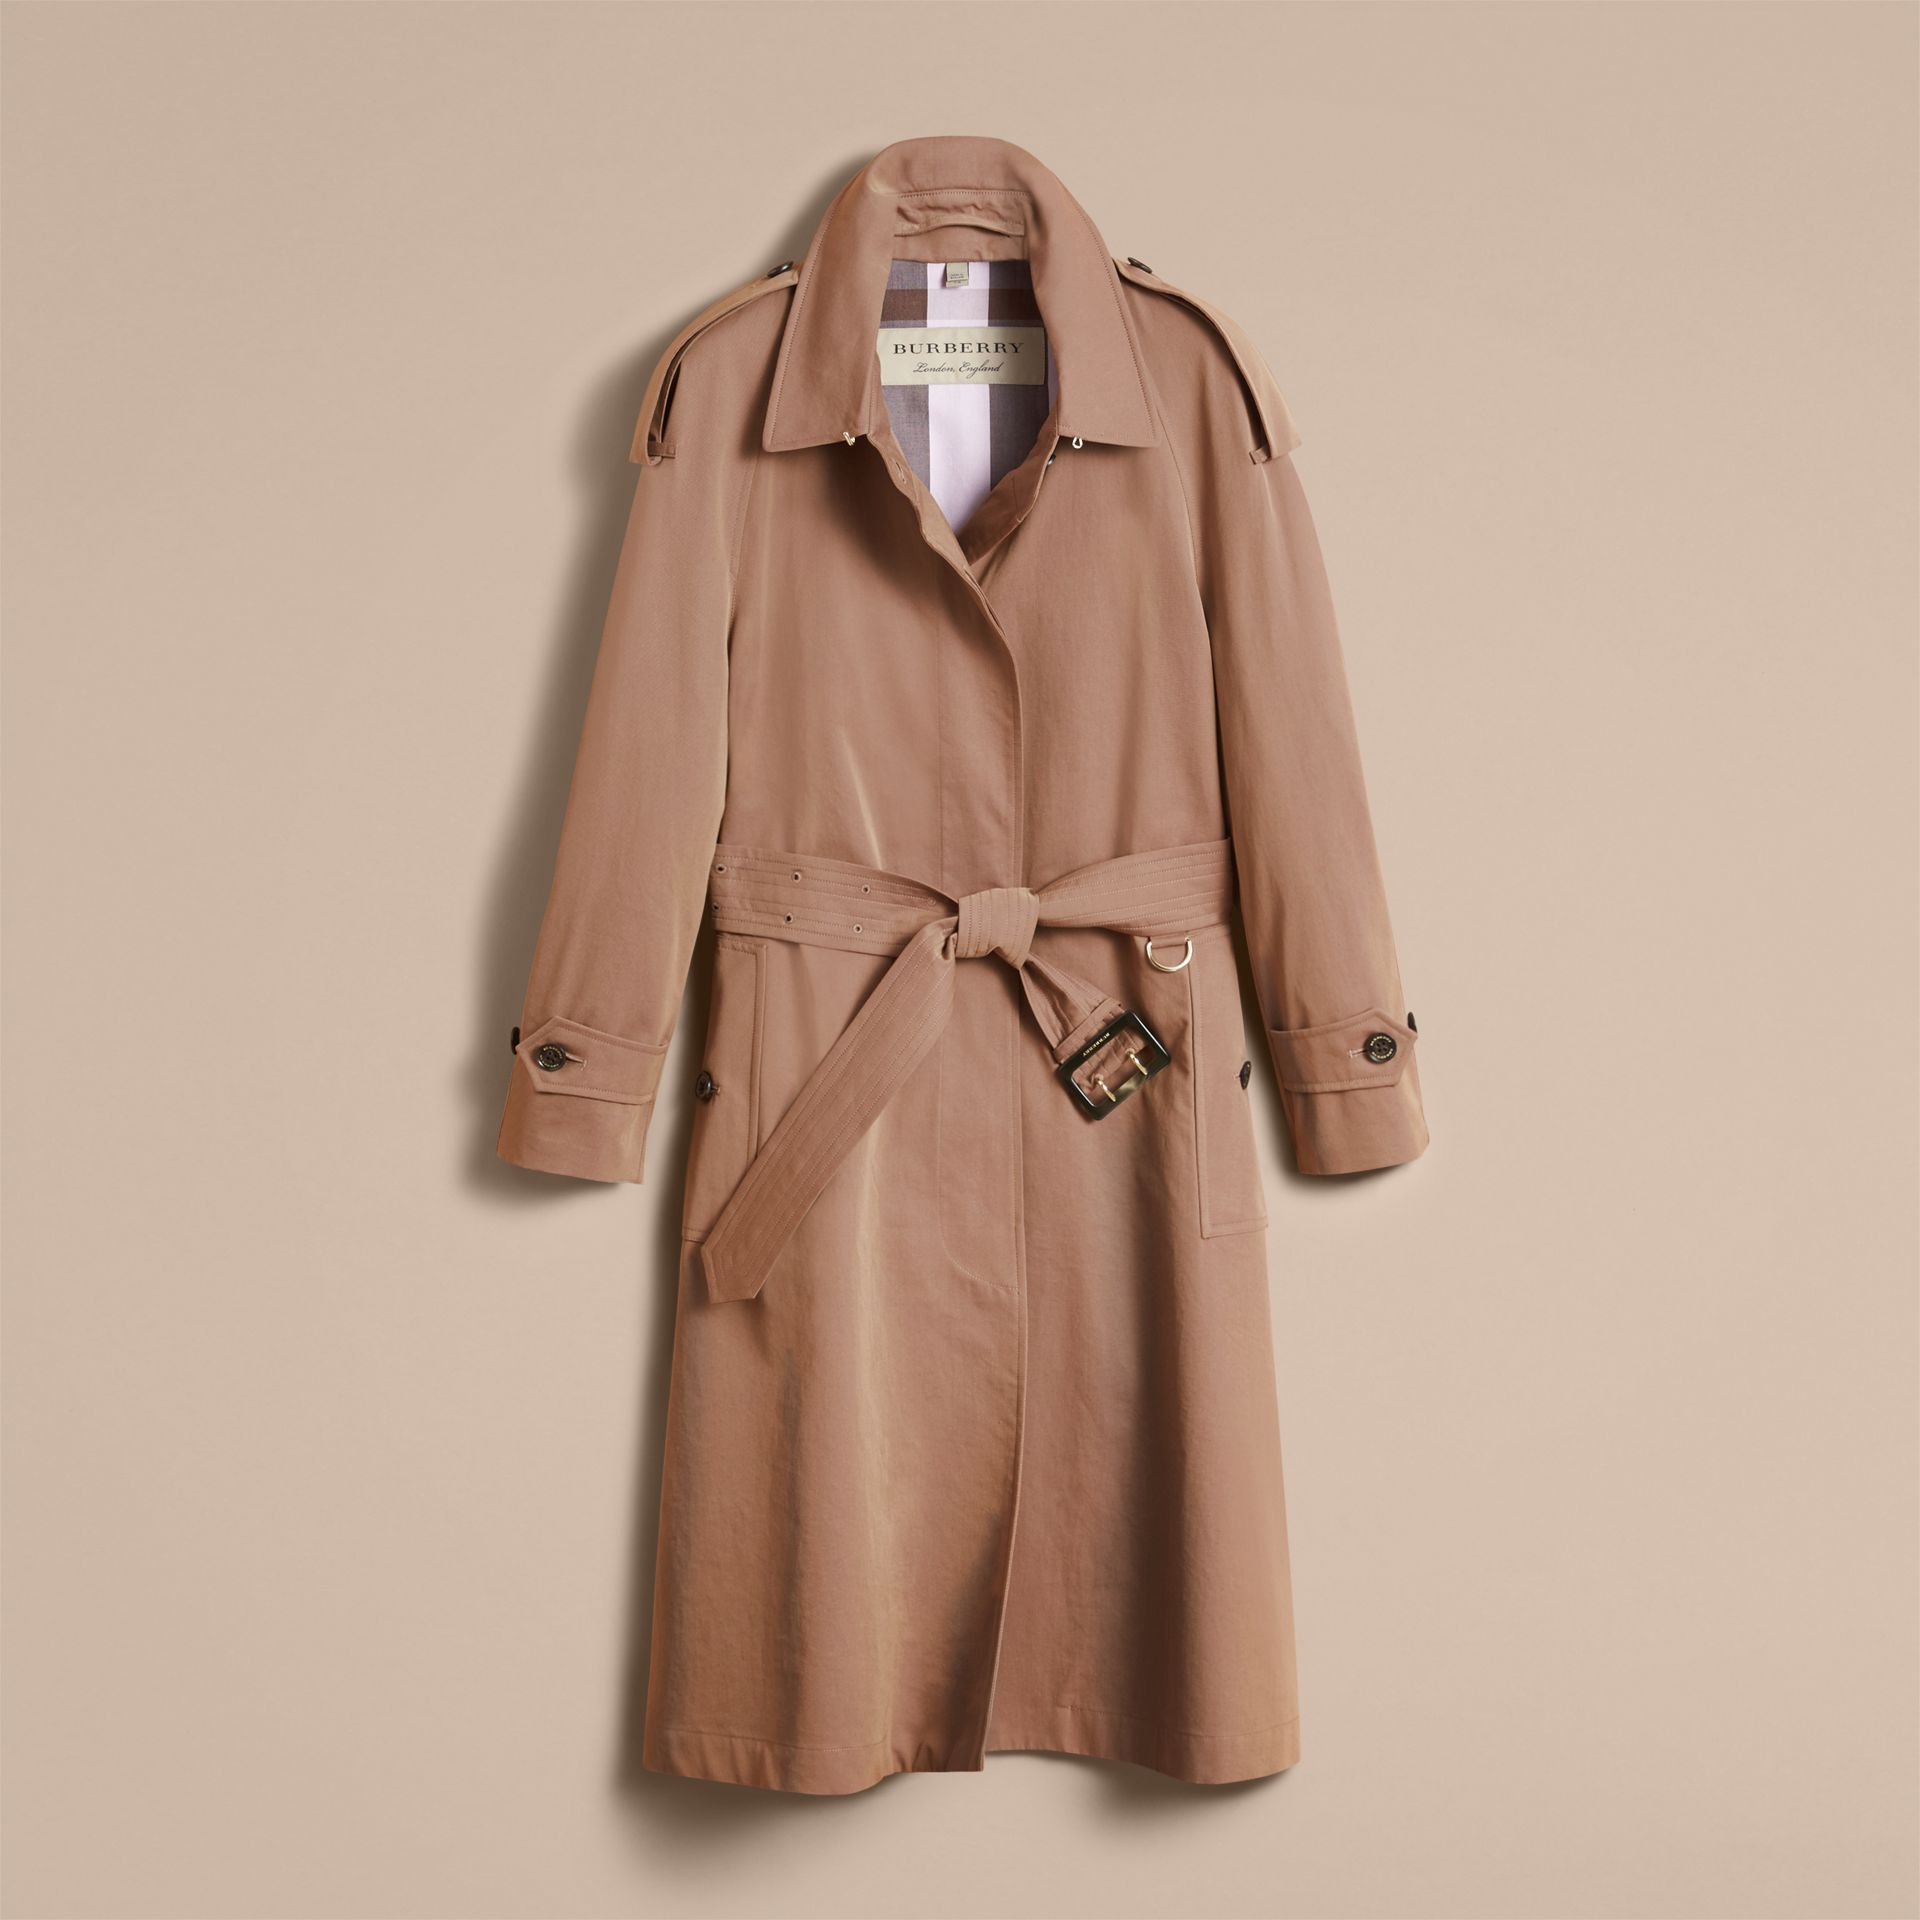 Tropical Gabardine Trench Coat in Taupe - Women | Burberry United States - gallery image 4